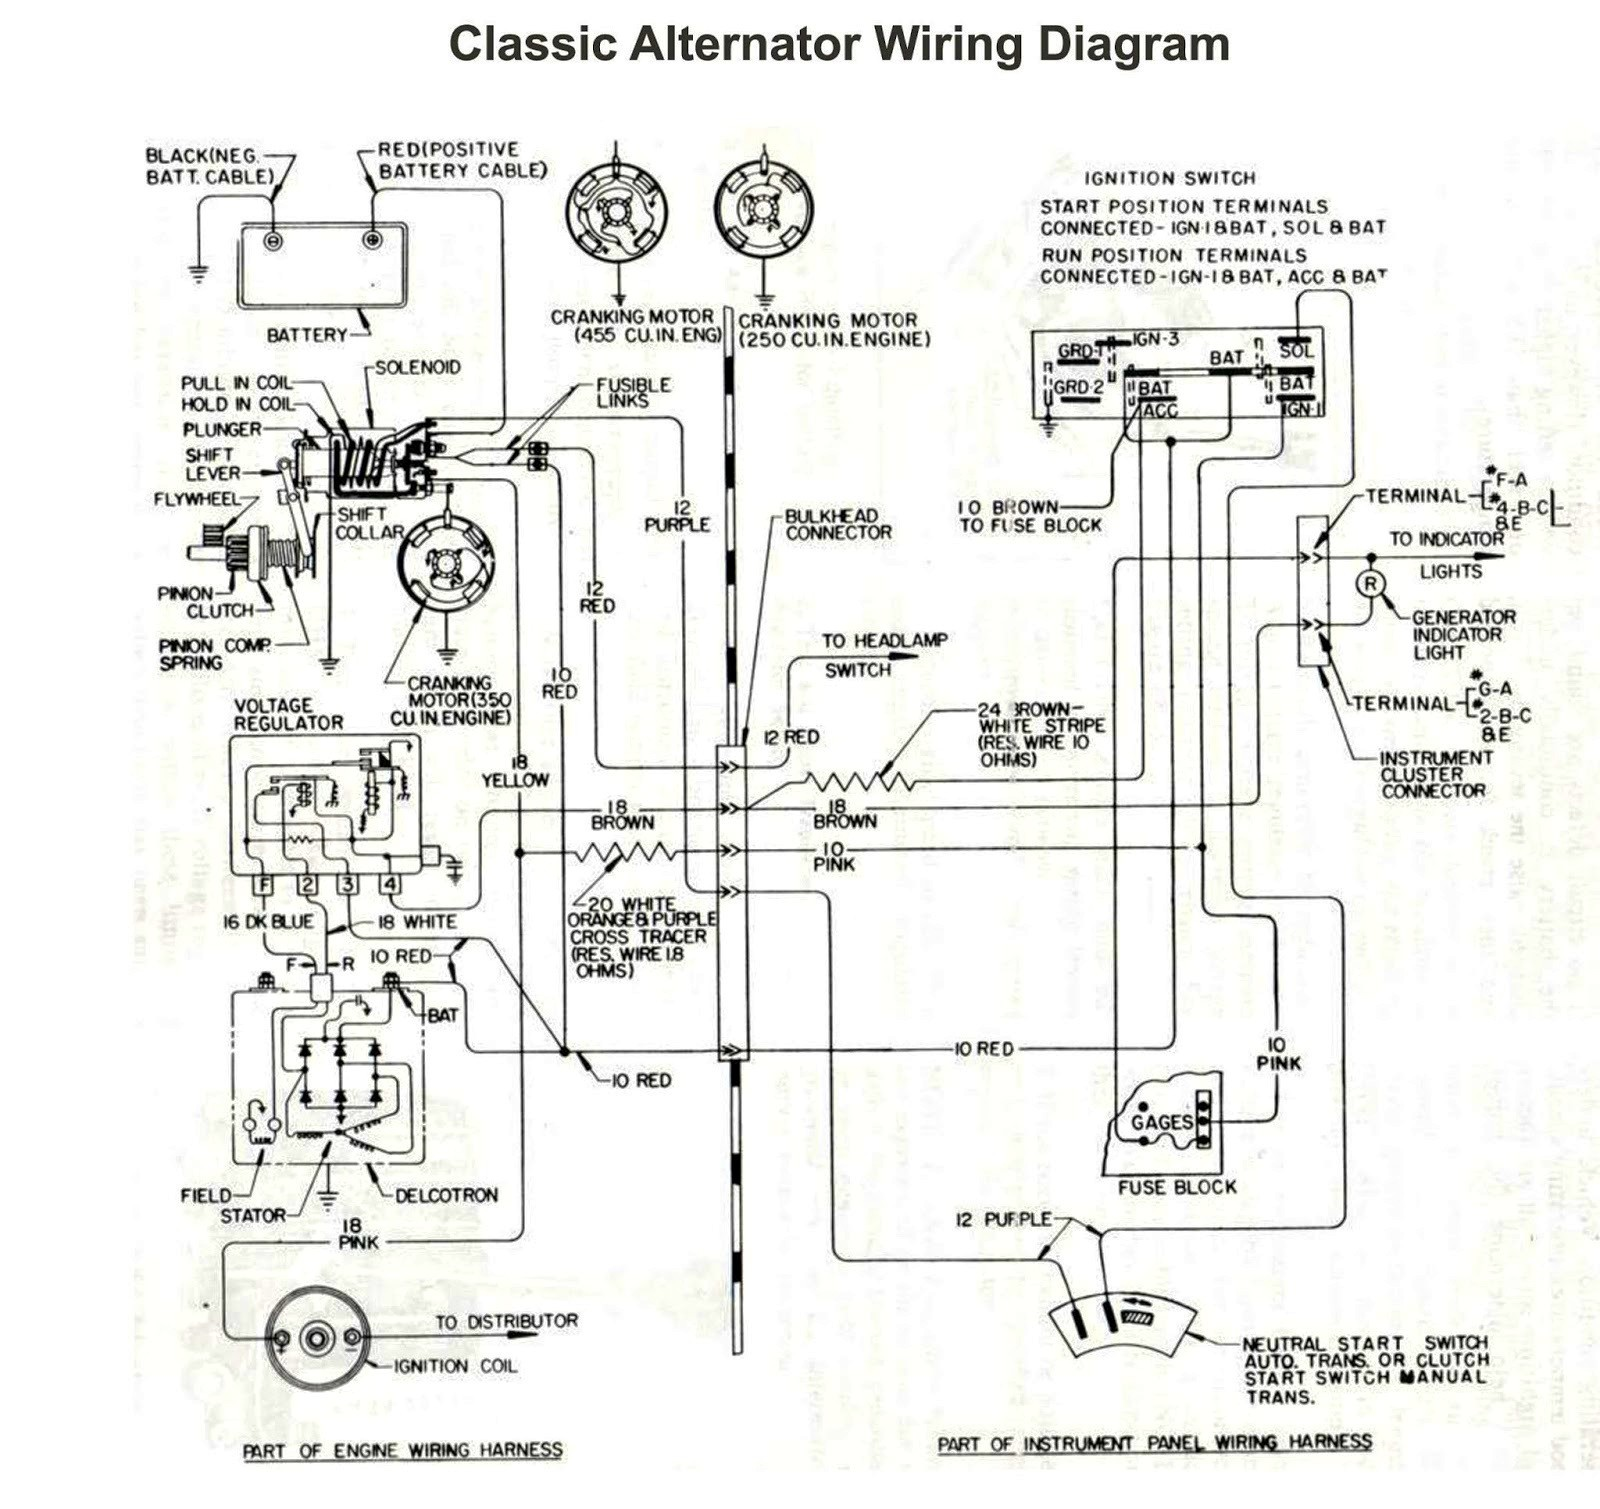 Ford 3000 Alternator Wiring Diagram Electrical Wiring Diagram Ford 8N  Alternator Conversion Diagram Ford 1300 Tractor